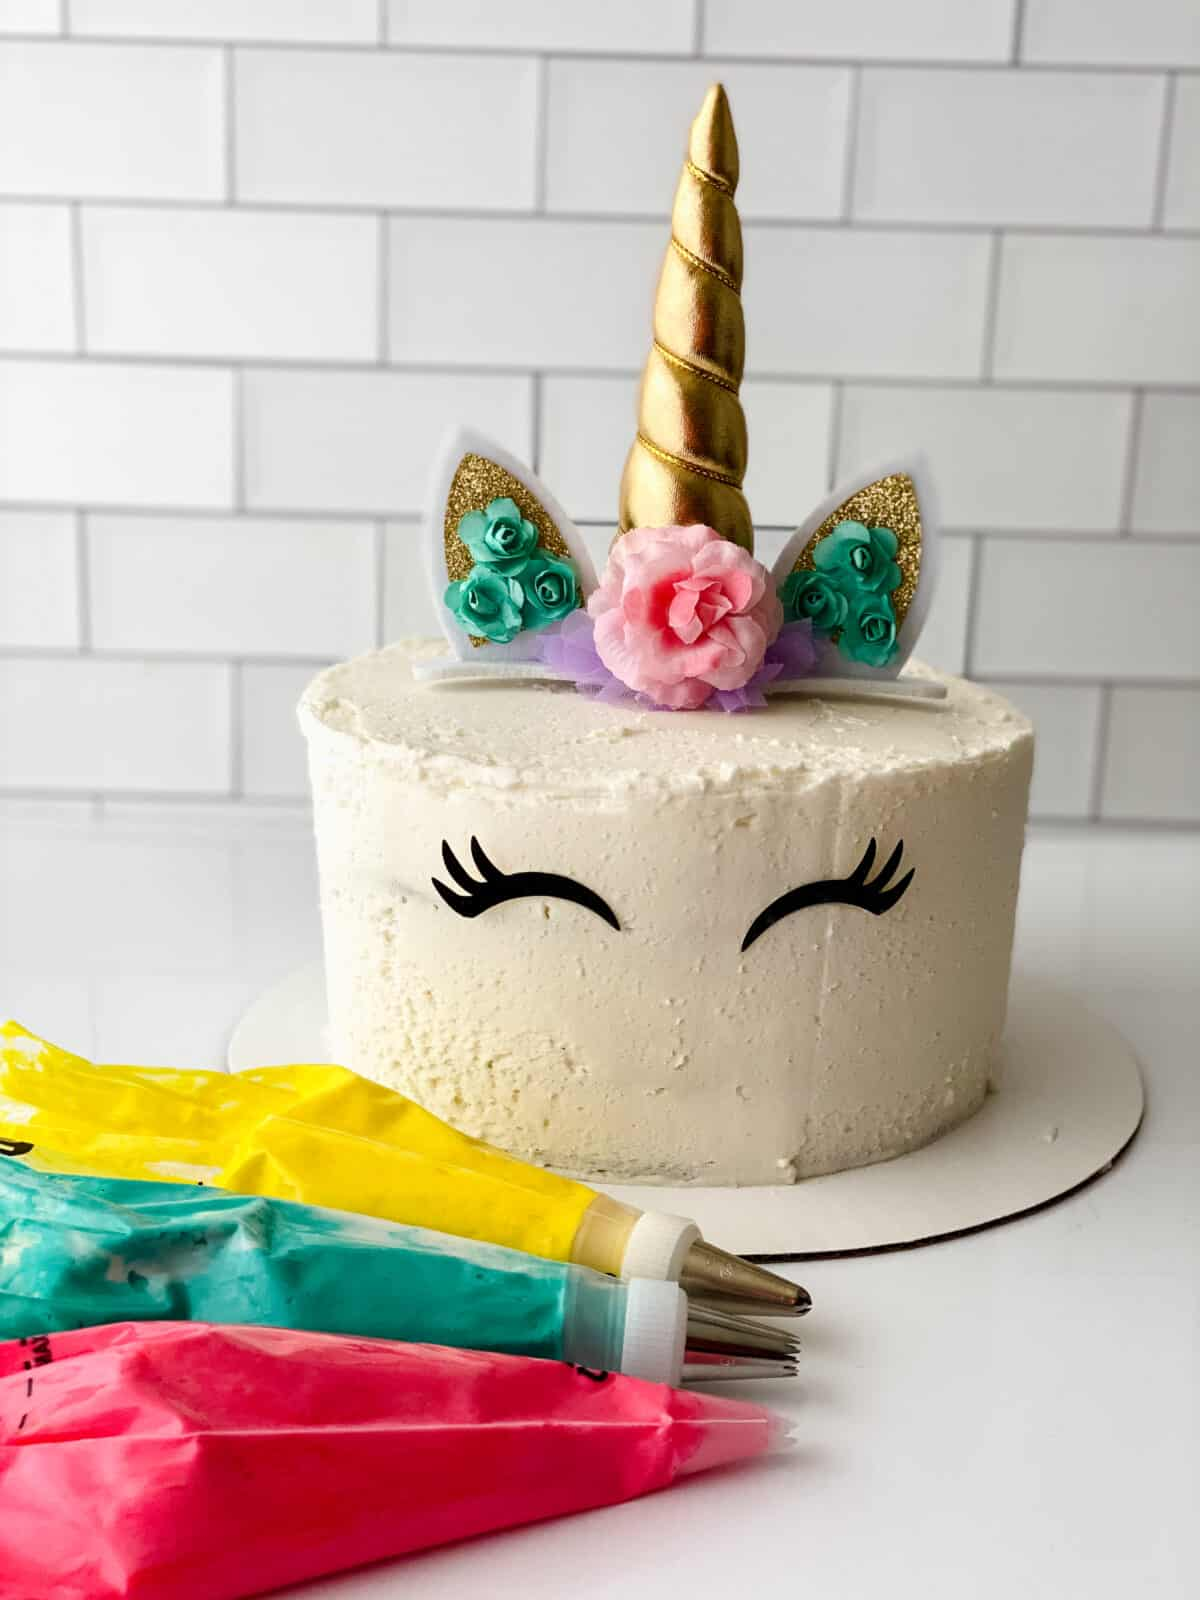 crumb coated unicorn cake with topper and eyelashes added. yellow, red, and teal icings are in frosting bags in the foreground